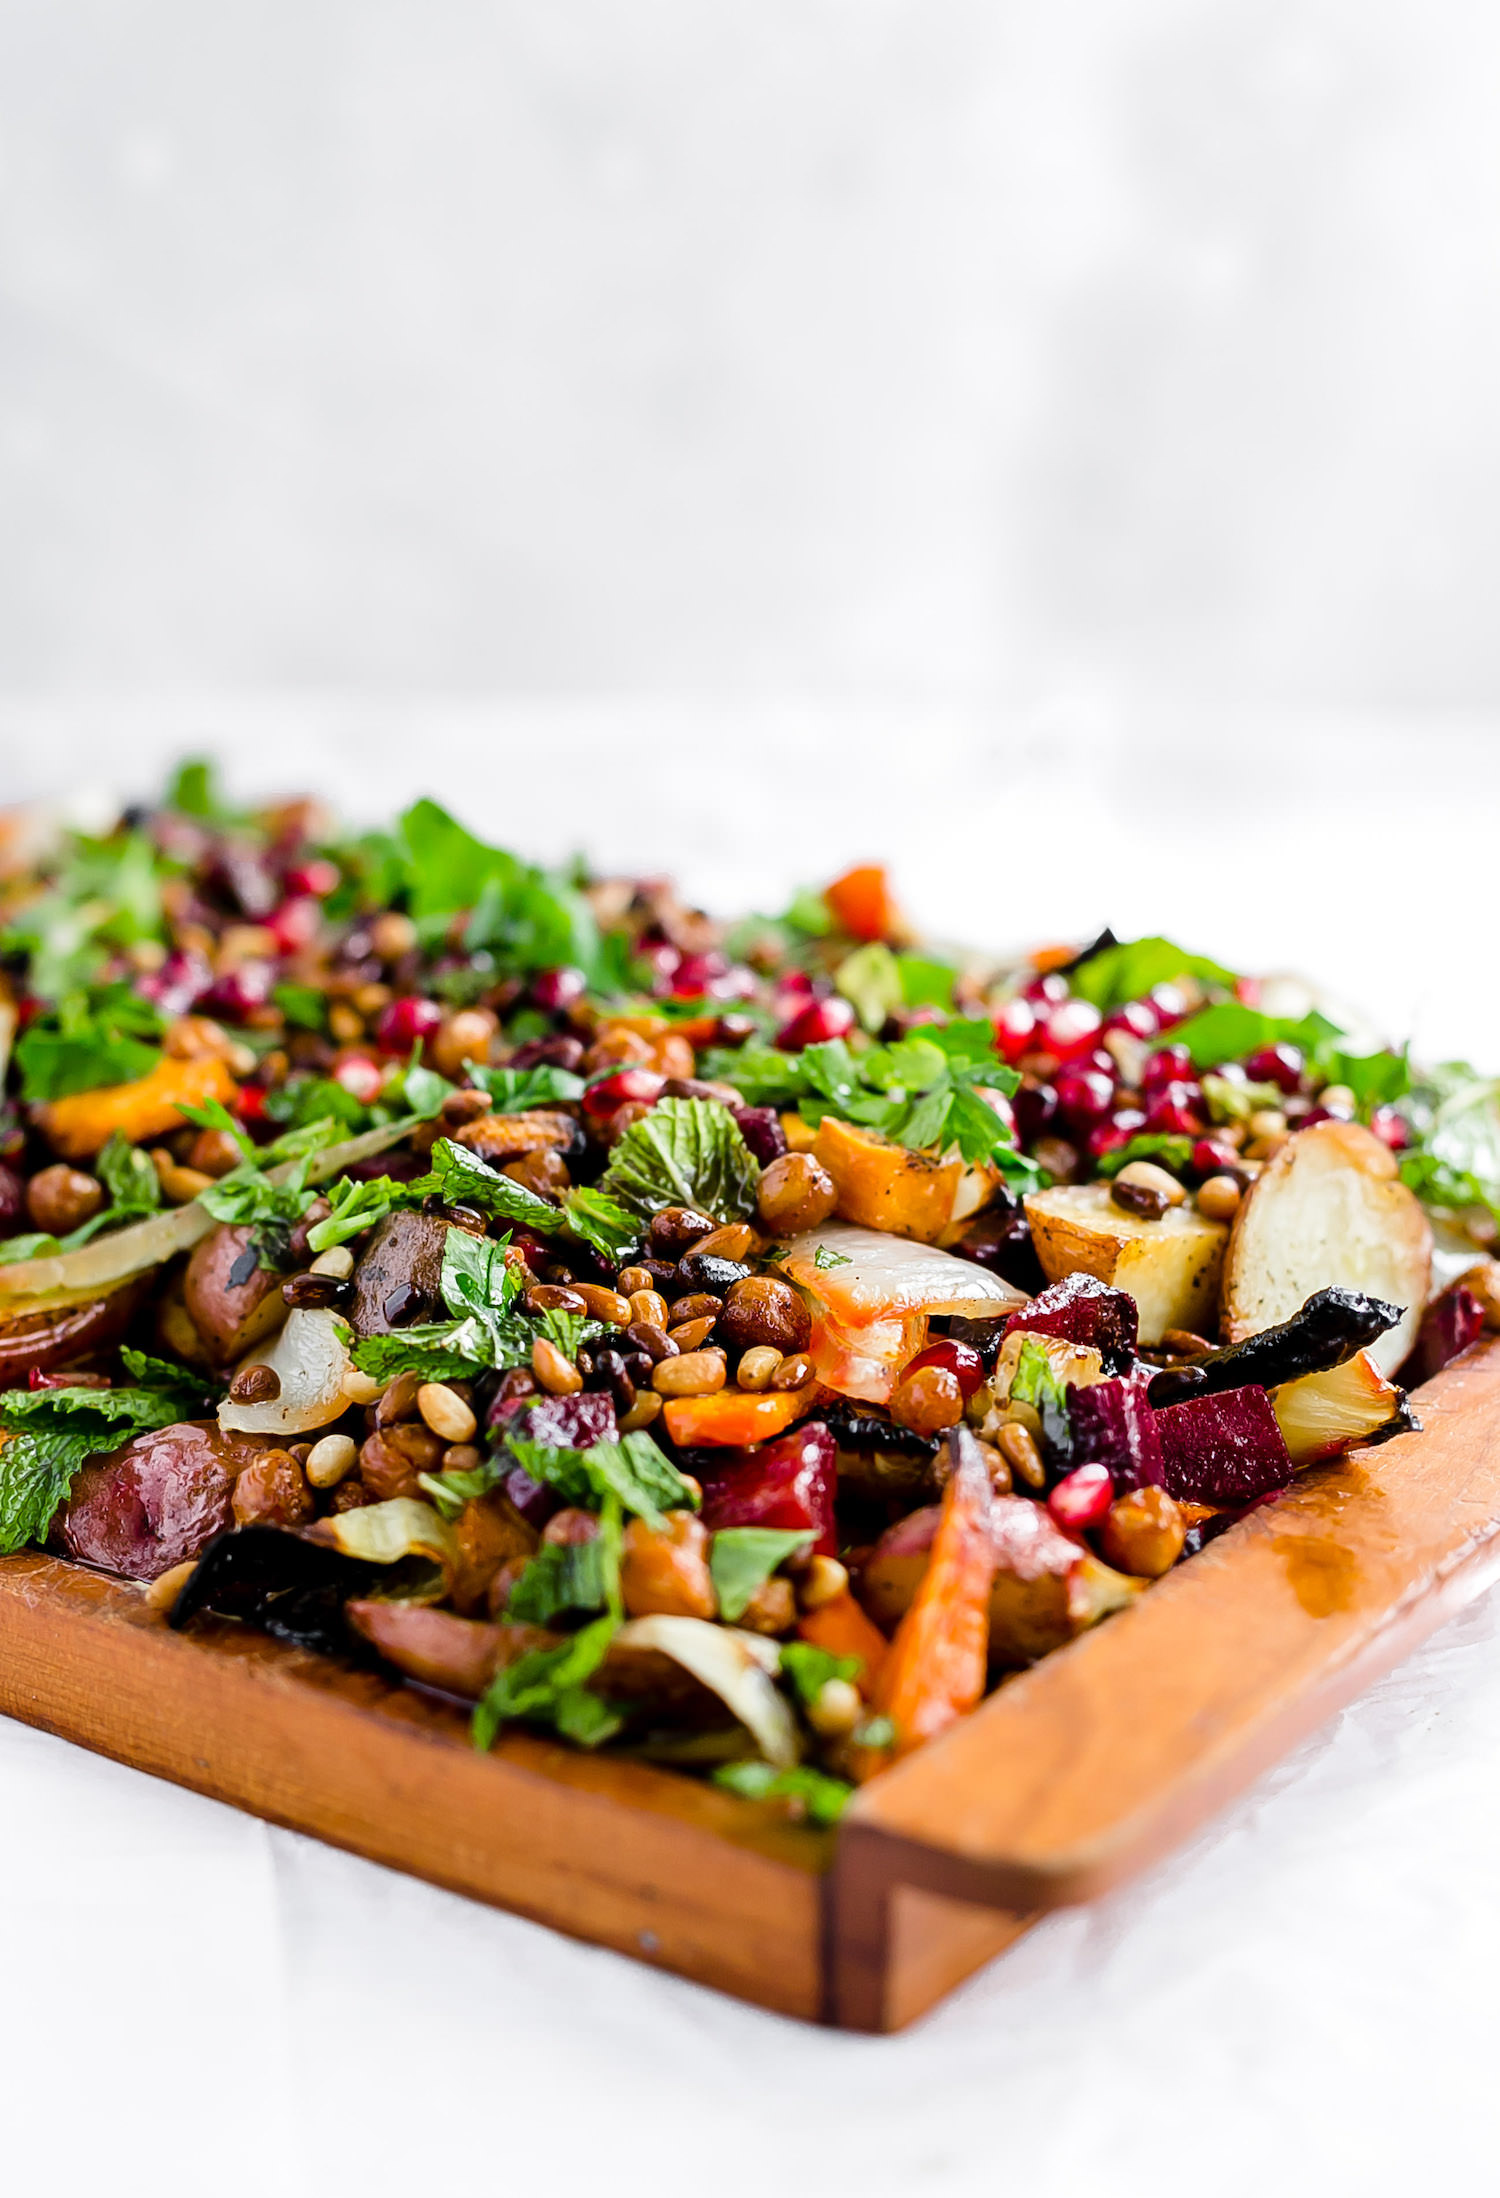 Roasted Vegetable Hummus Platter: hummus topped with tender roasted vegetables, crispy chickpeas, pomegranates, herbs, pine nuts, and a balsamic glaze. Best side dish! | TrufflesandTrends.com